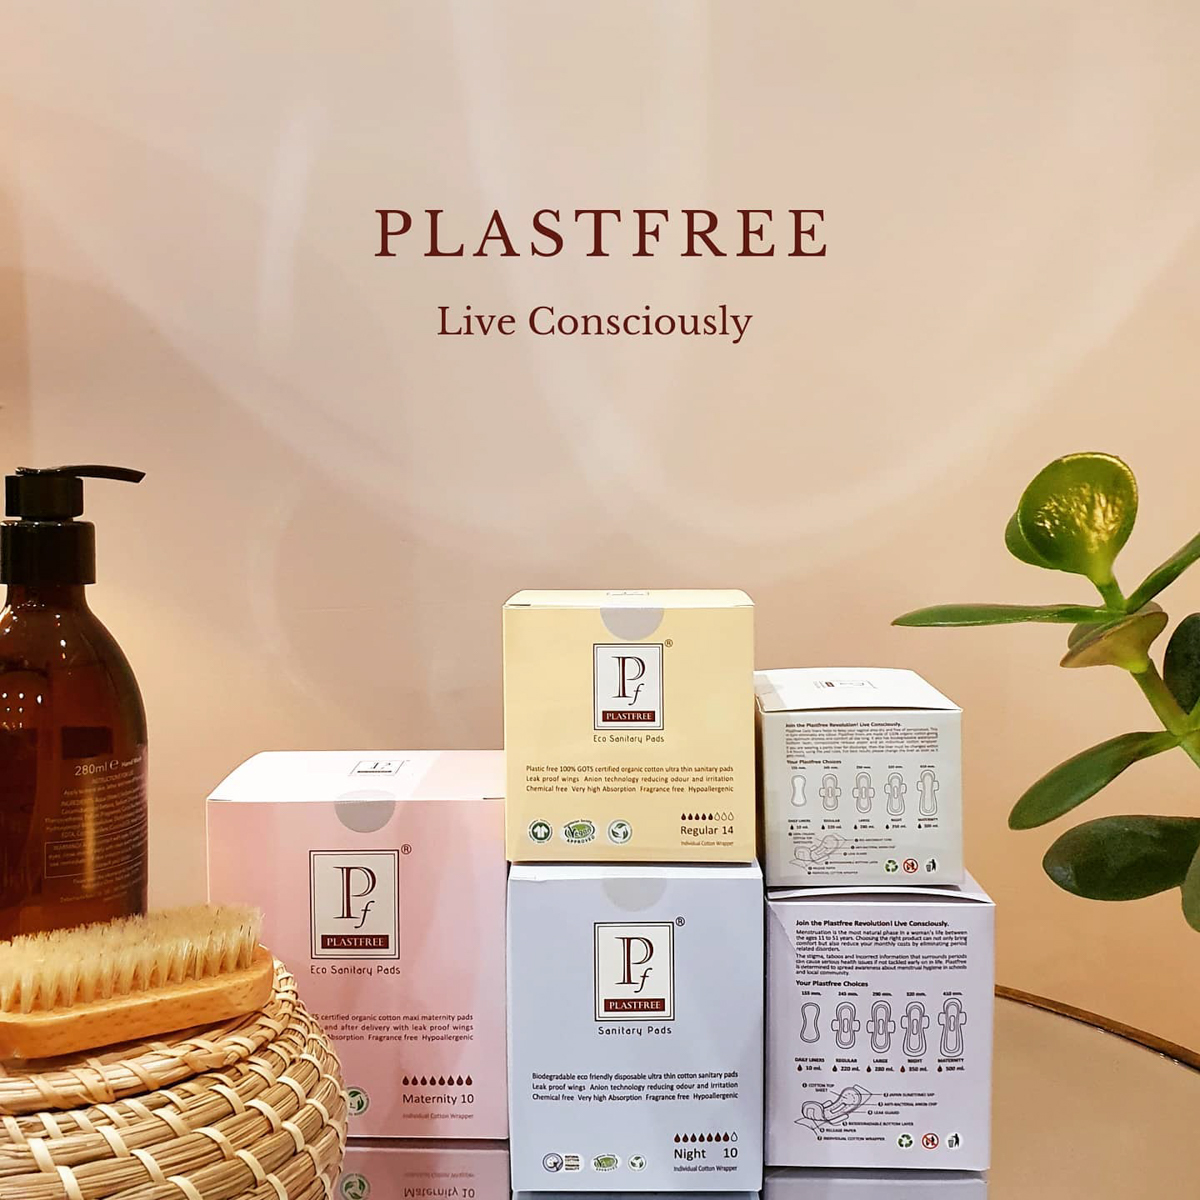 Plastfree period products